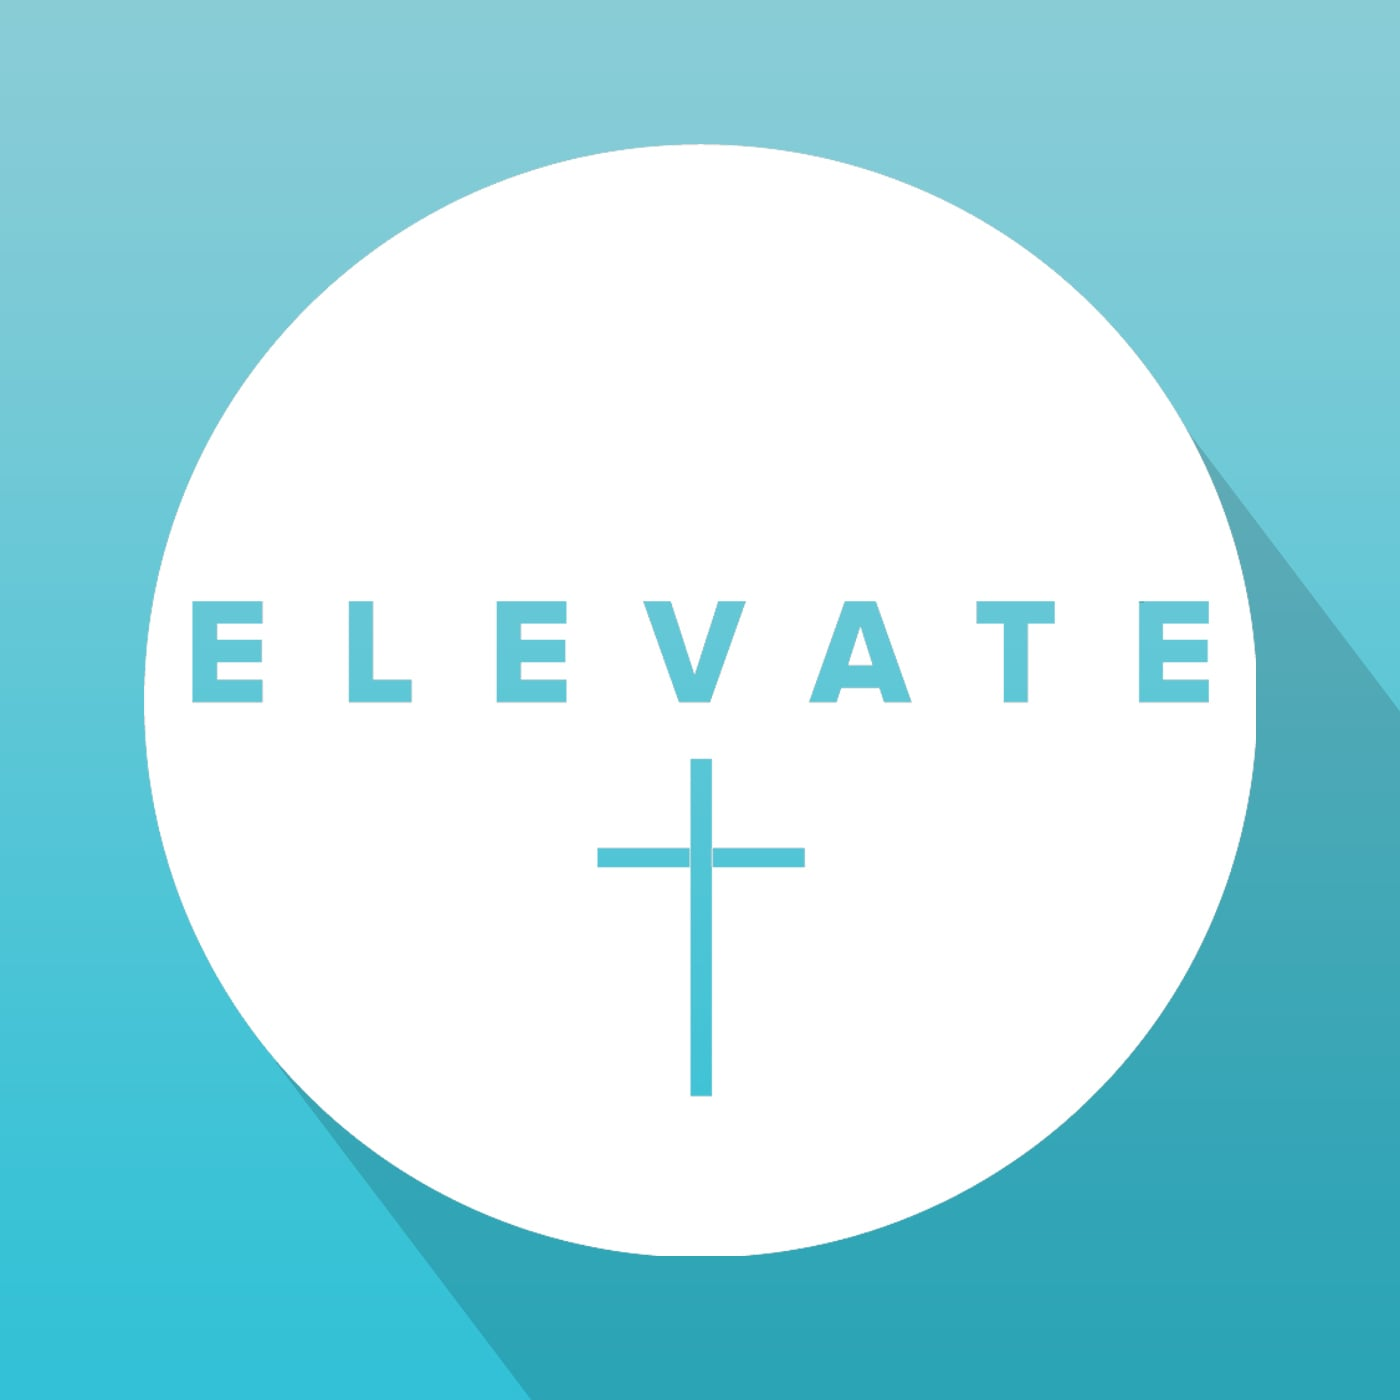 message audio - Elevate Church of Windsor, VA